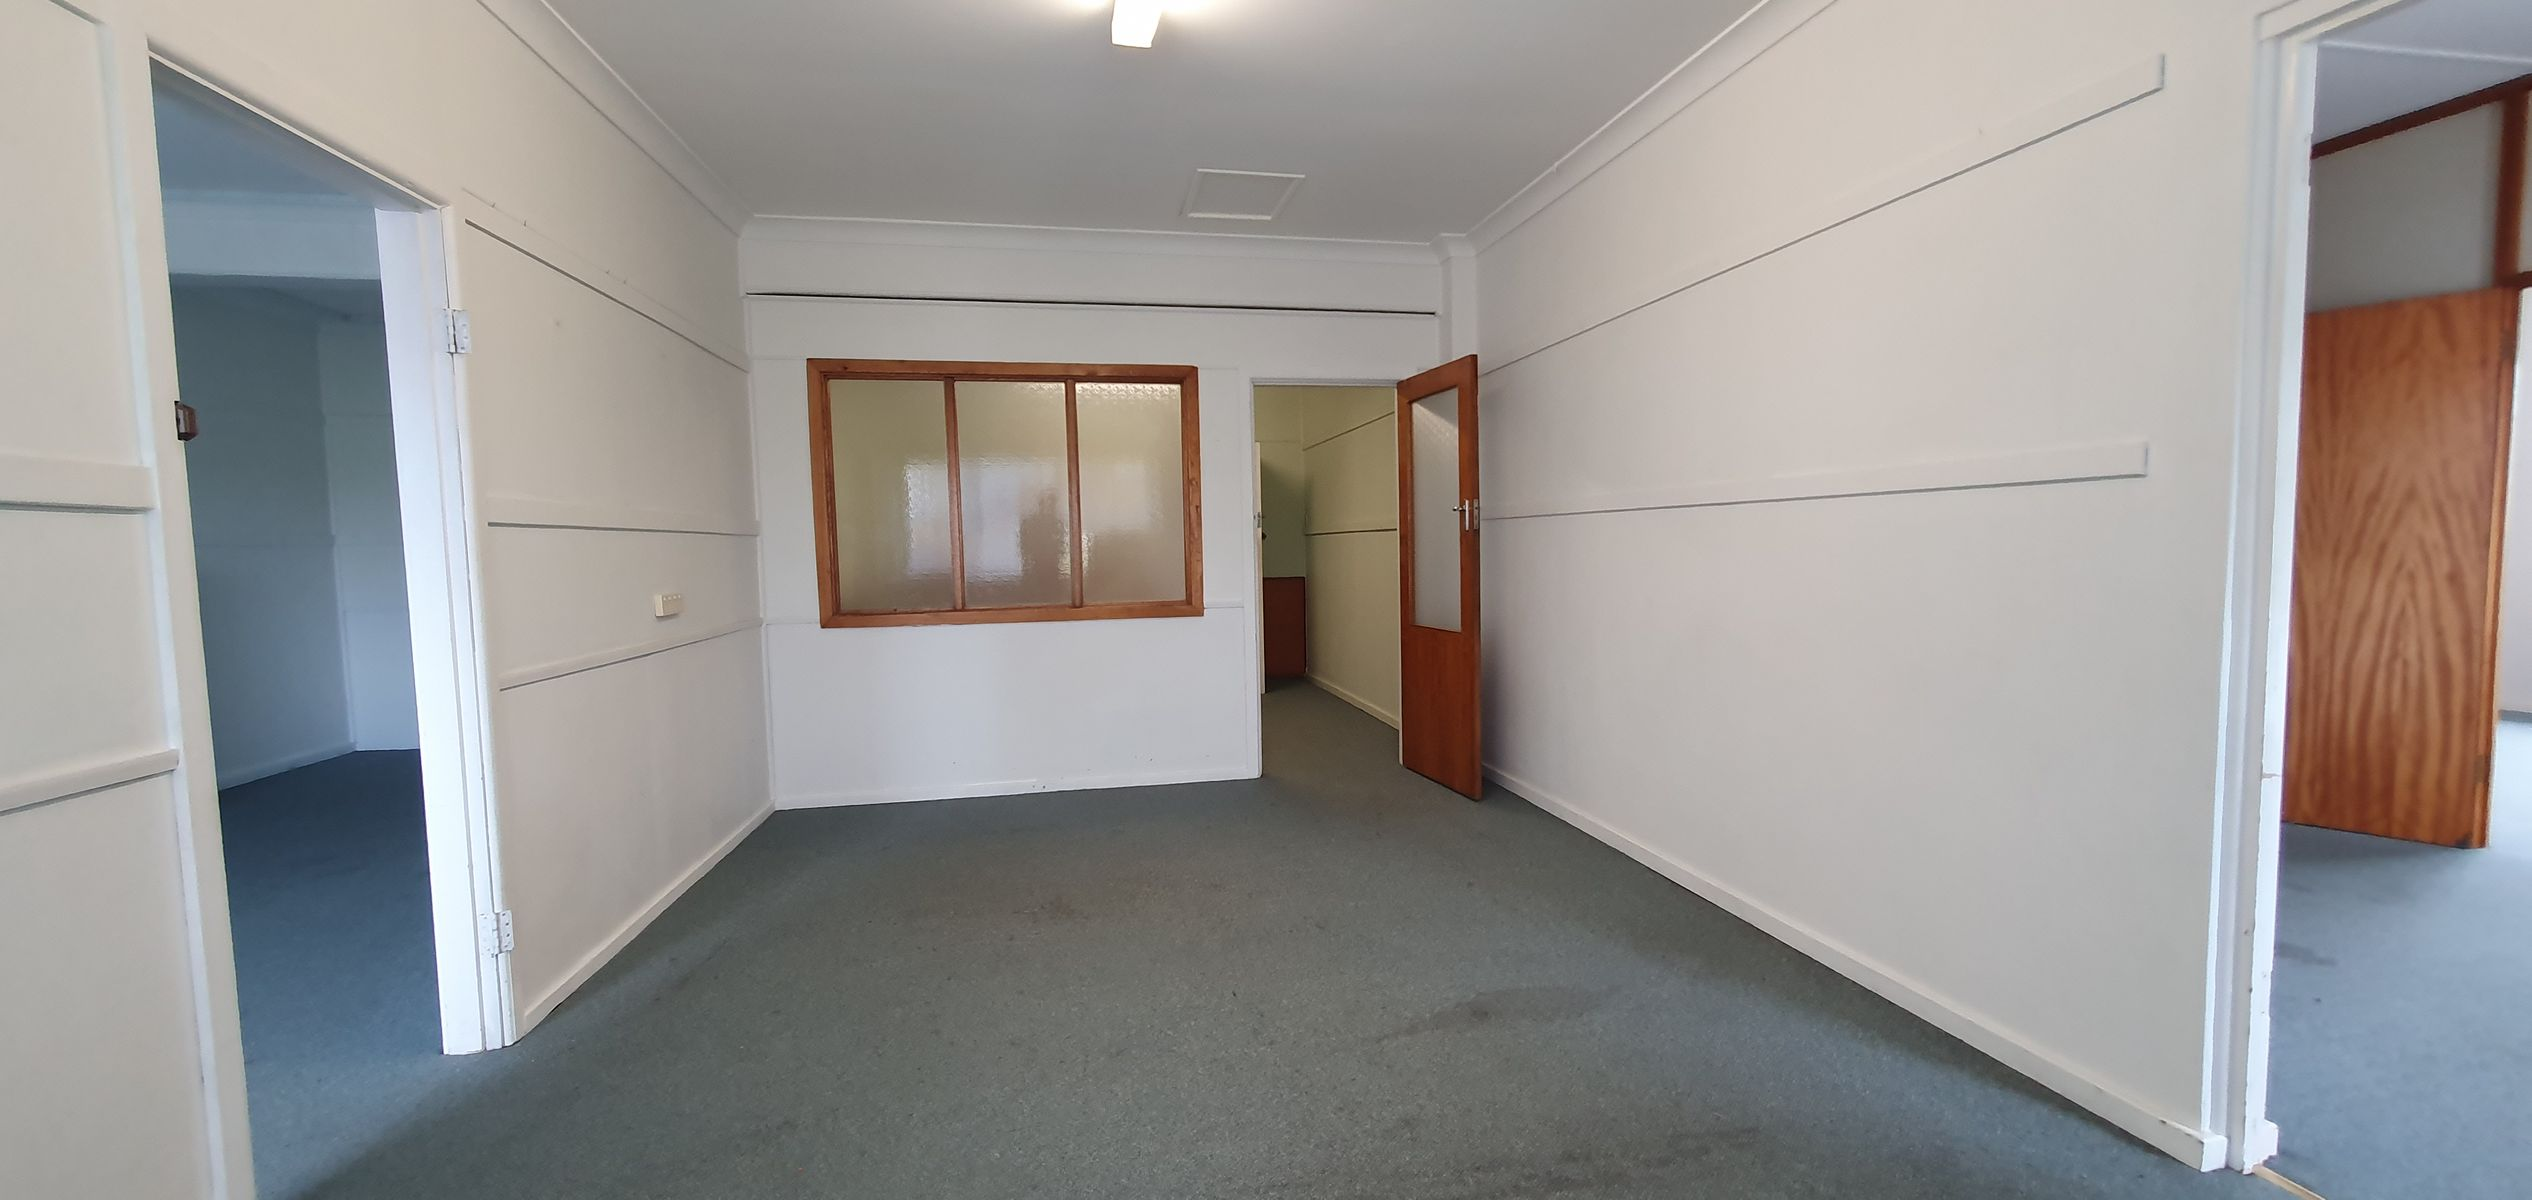 Part Level 1/129 Victoria Street, Taree, NSW 2430